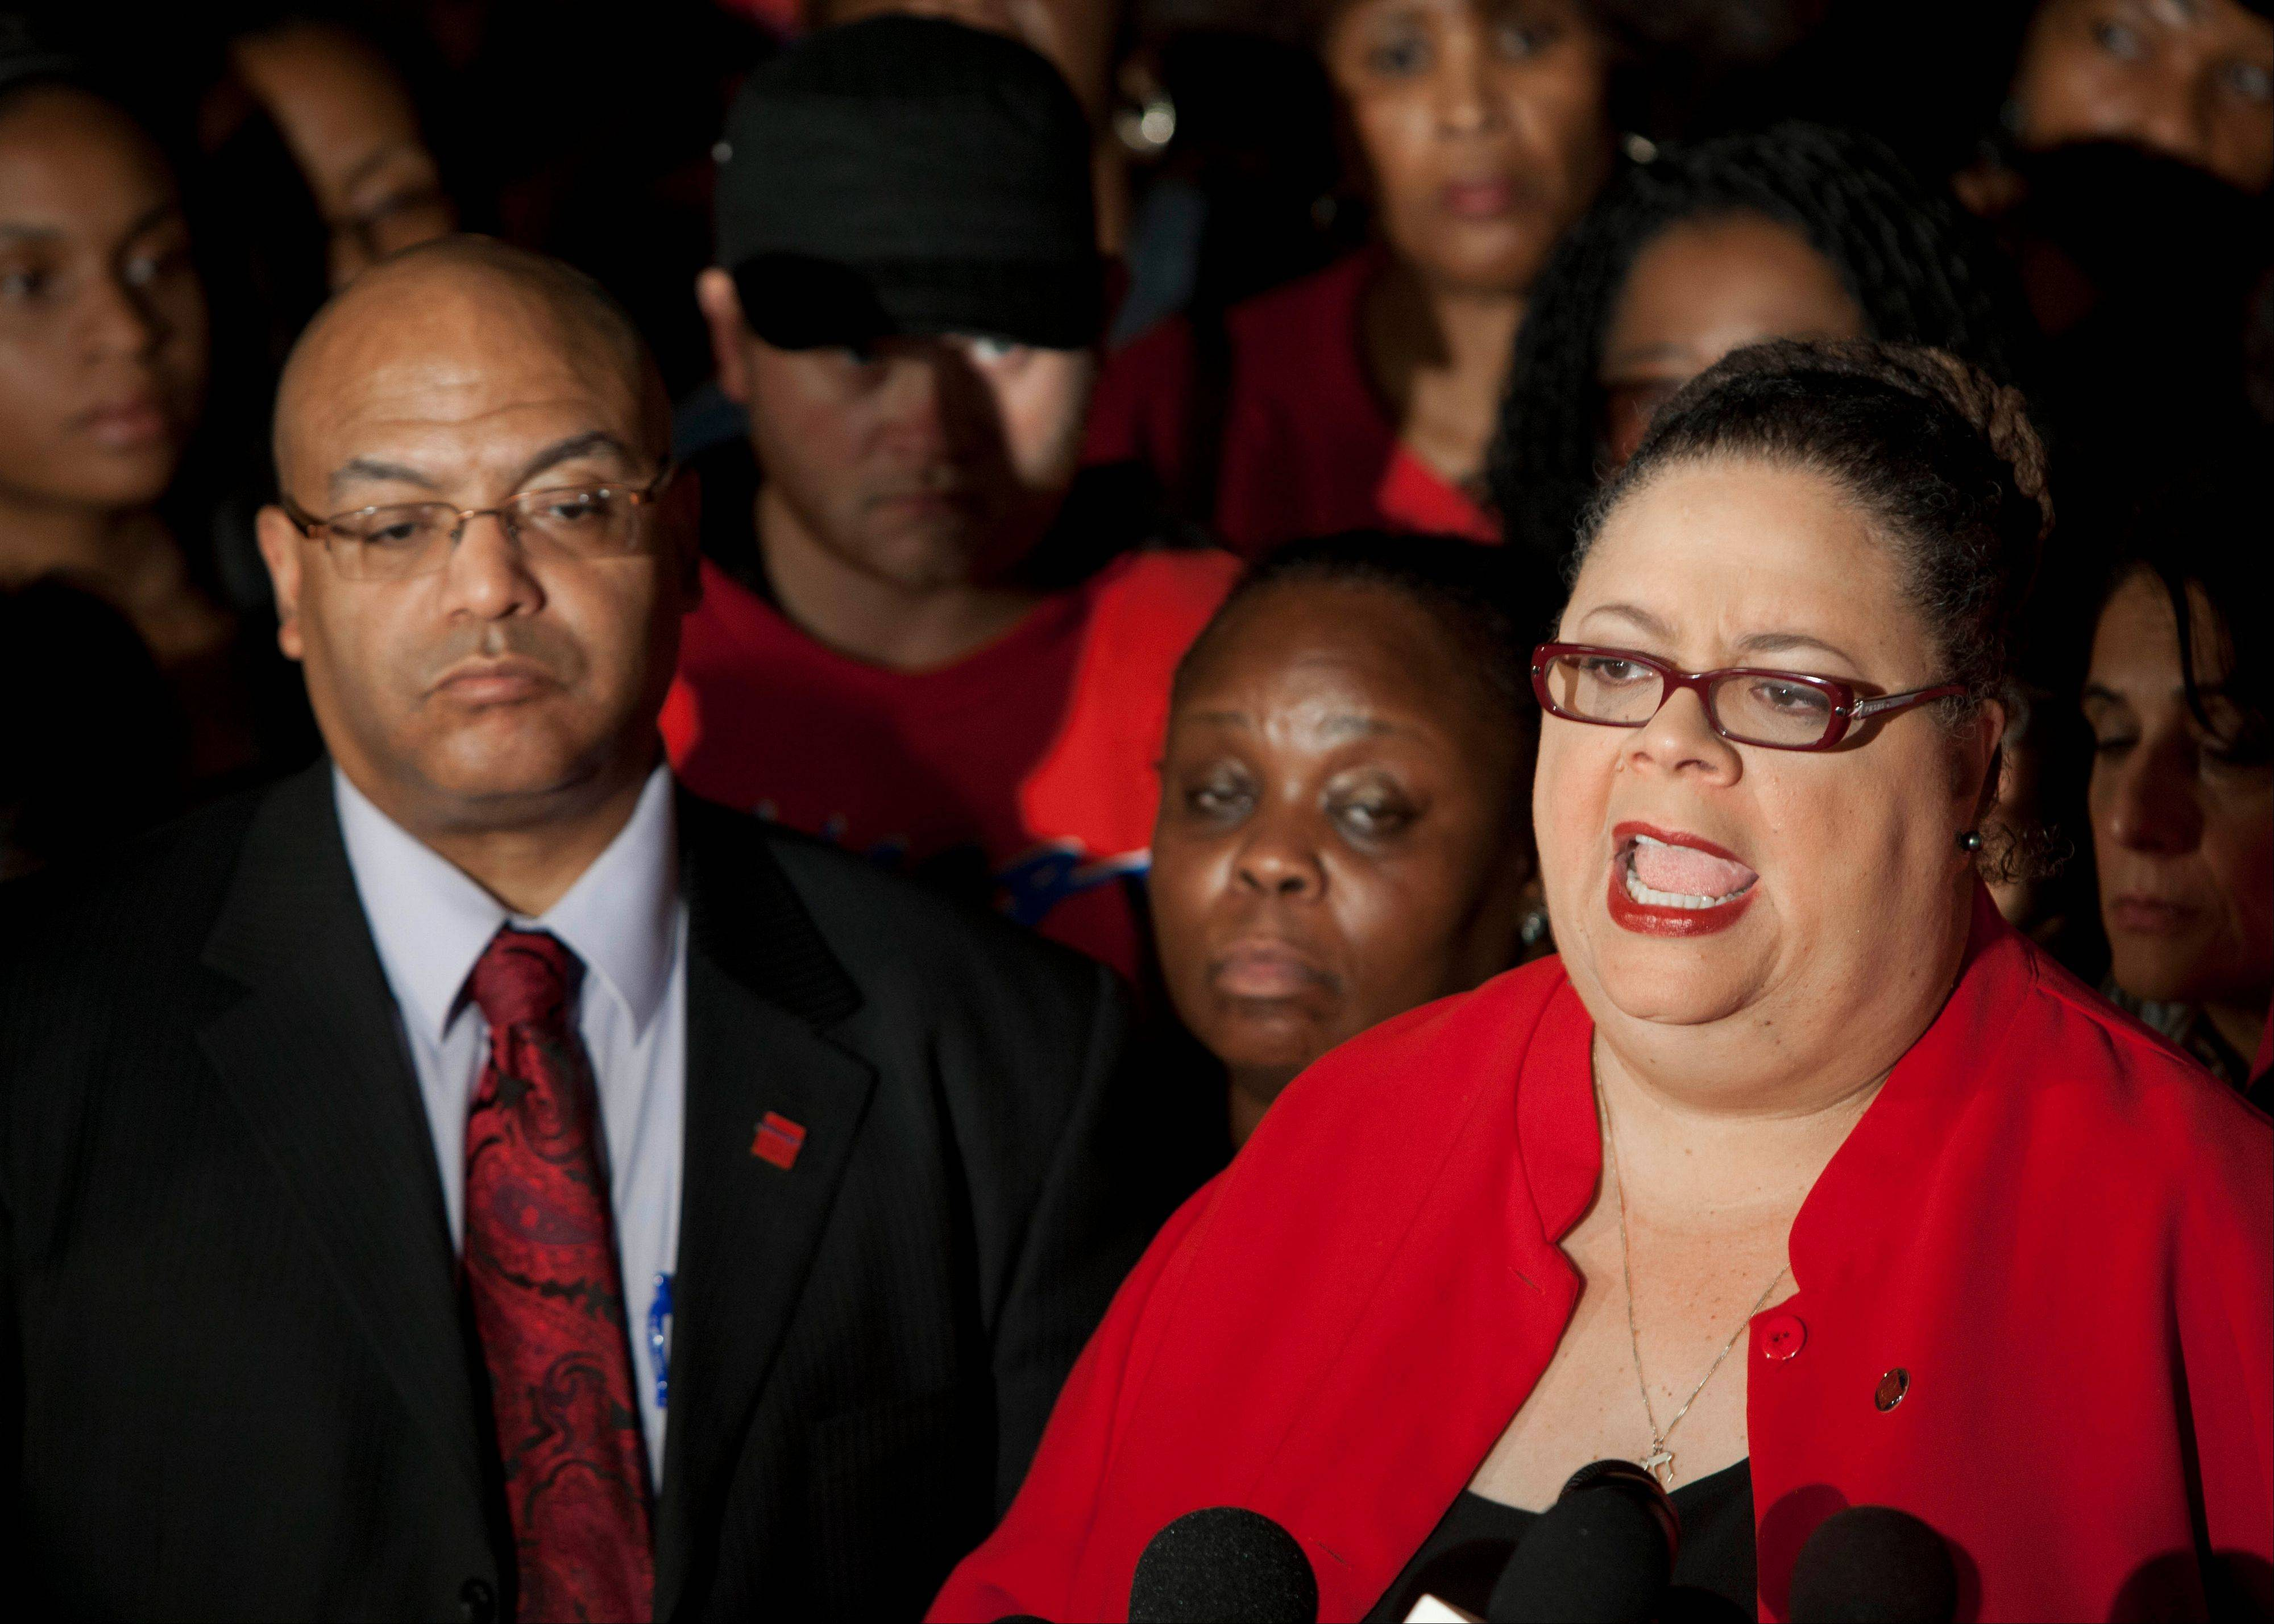 On Sunday night, Chicago Teachers Union President Karen Lewis, right, tells reporters outside the union's headquarters that the city's 25,000 public school teachers will walk the picket line Monday morning.